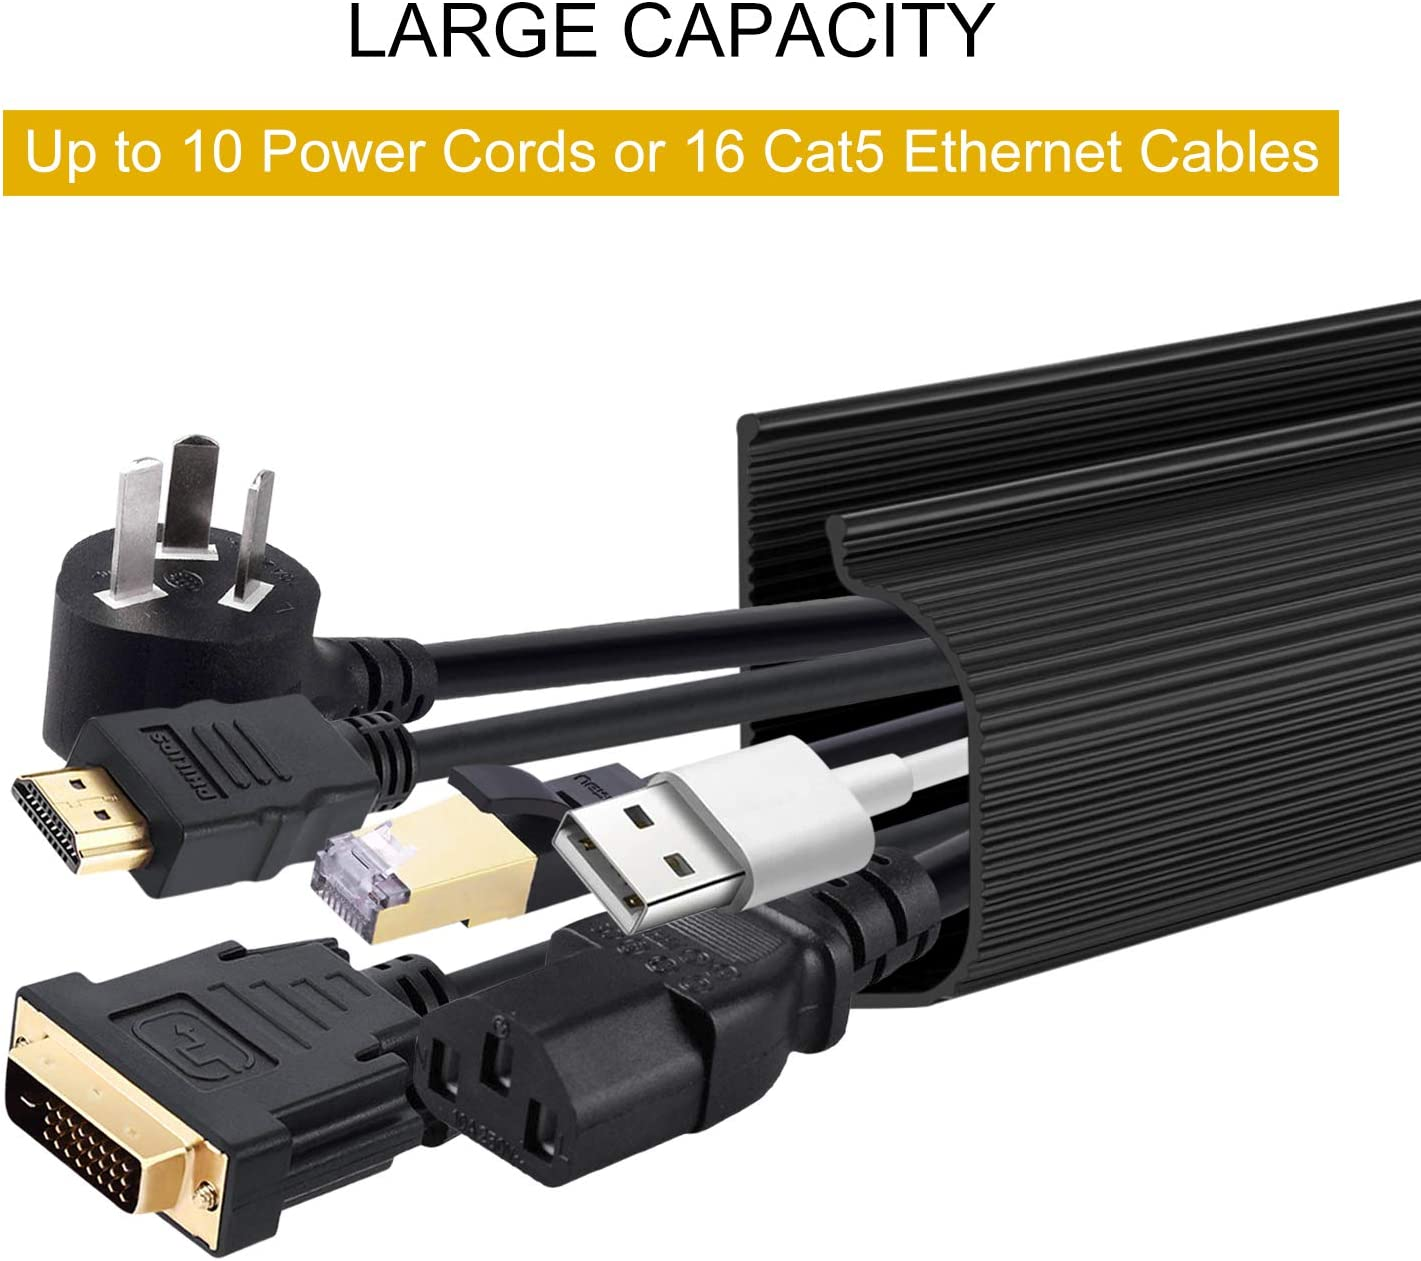 126 J Channel Cable Management,Desk Wire Manager,Cable Trunking,TV Cable Routing Slot,Wall-Mounted Cable Organizer,Used to Hide The Wires of TVs and Computers 15.75 Eachk 8pcs